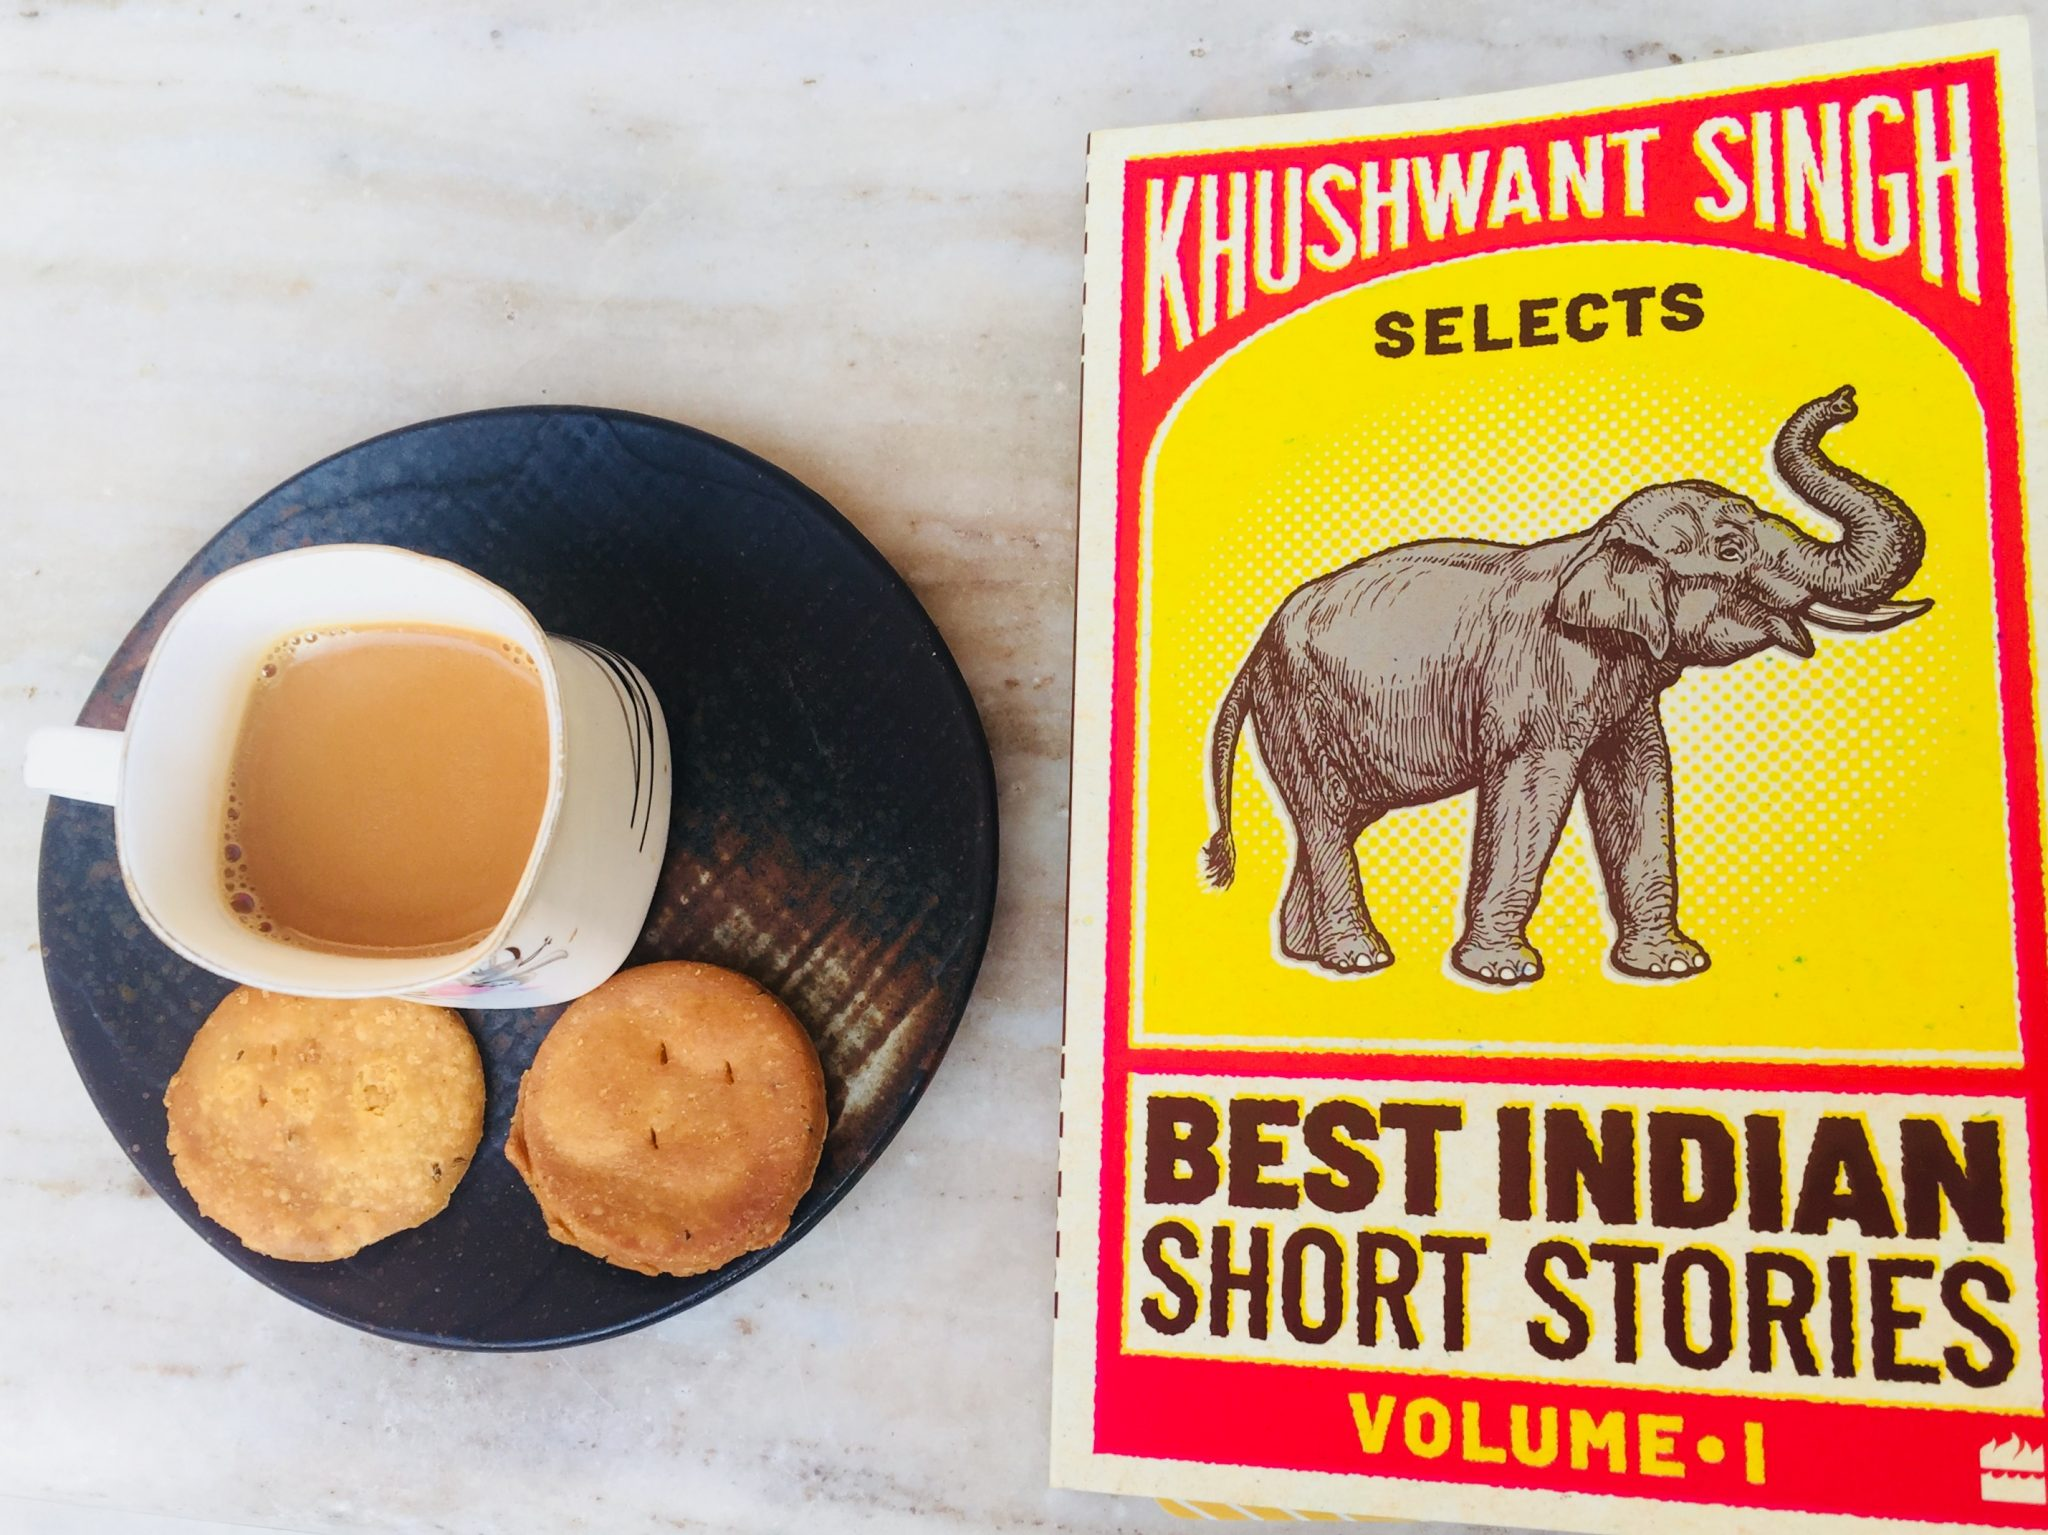 Khushwant Singh selects best Indian stories volume – 1 Book review